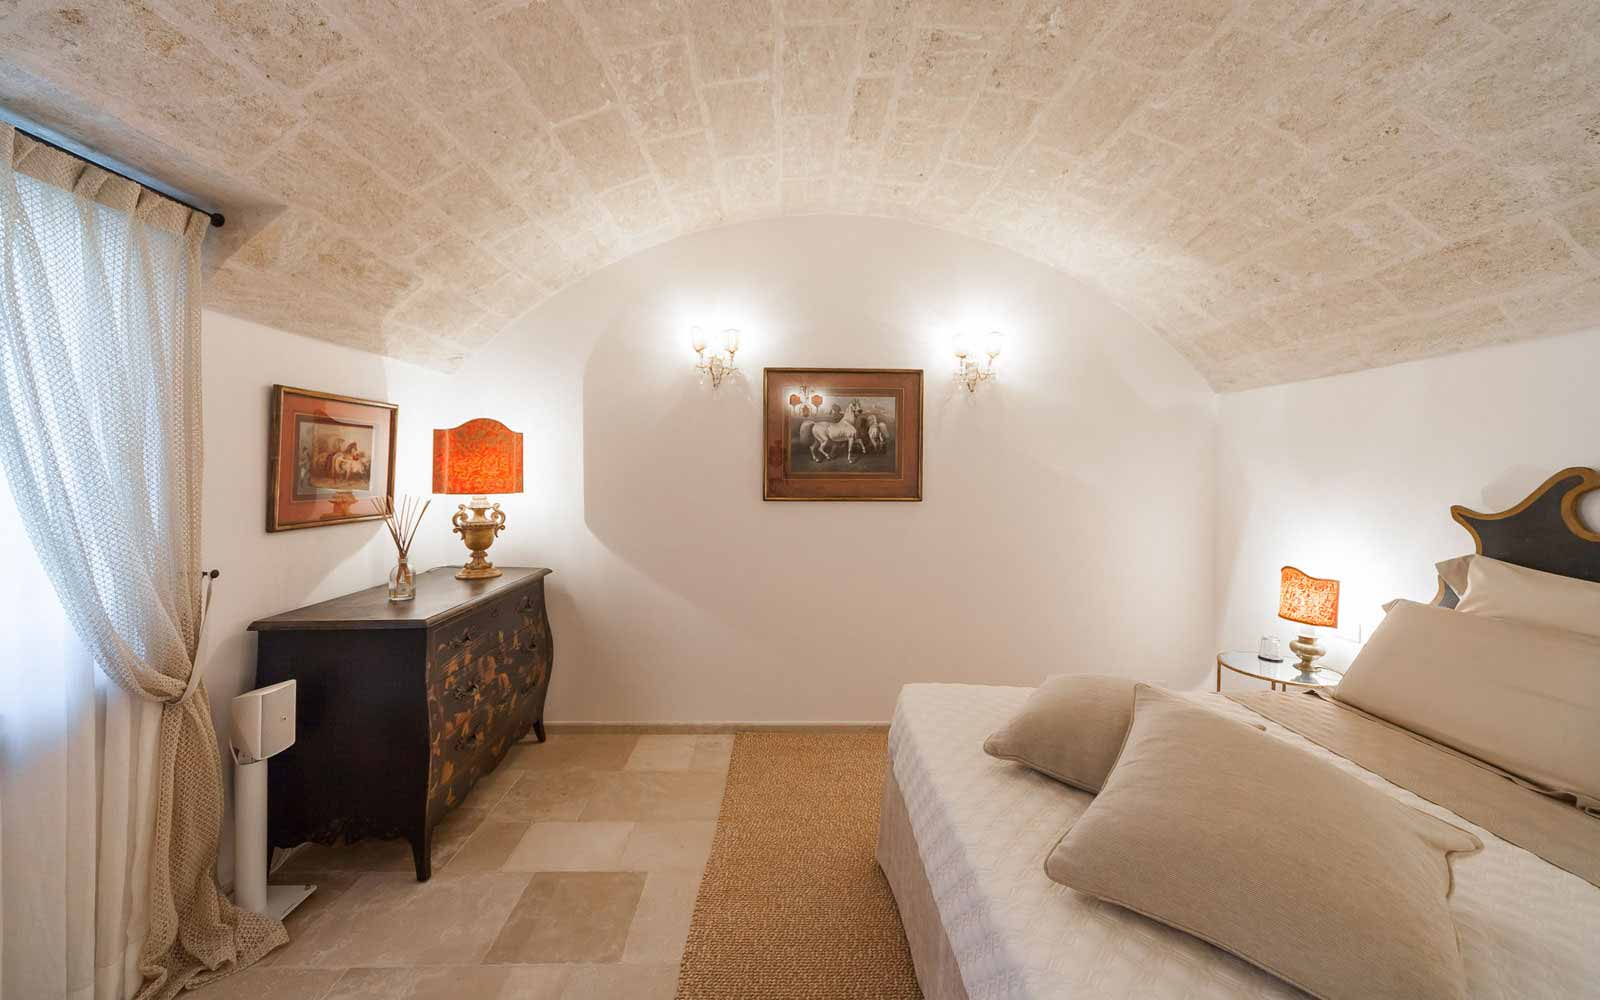 Bedroom at La Residenza of Masseria Pettolecchia